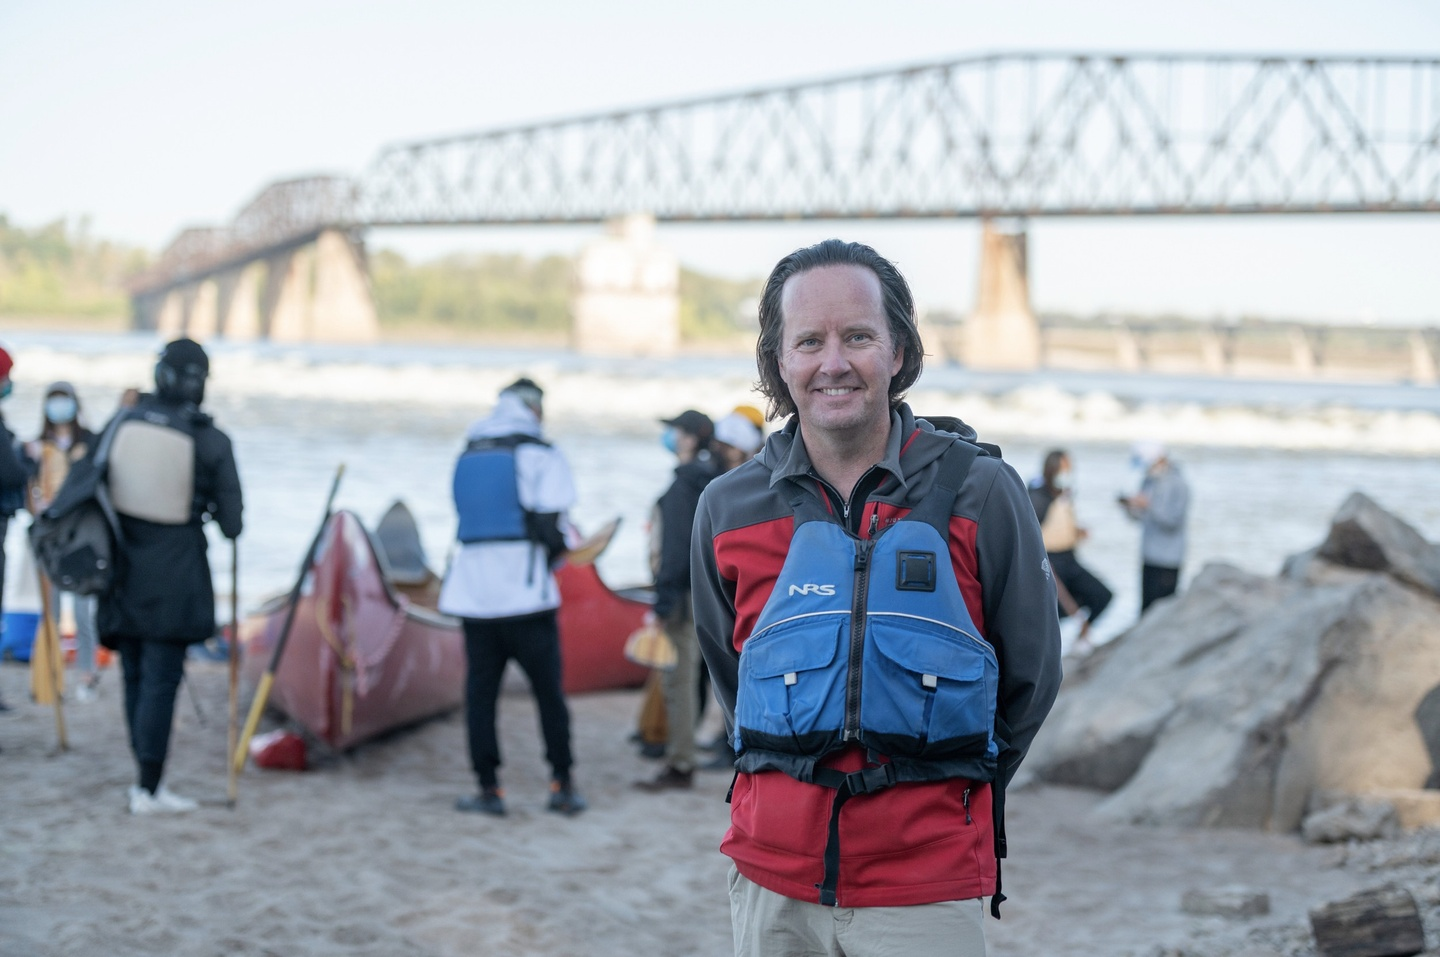 Person with blue life jacket stands in the foreground, in front of the waterfront and bridge. In the background, students prepare to get into canoes.